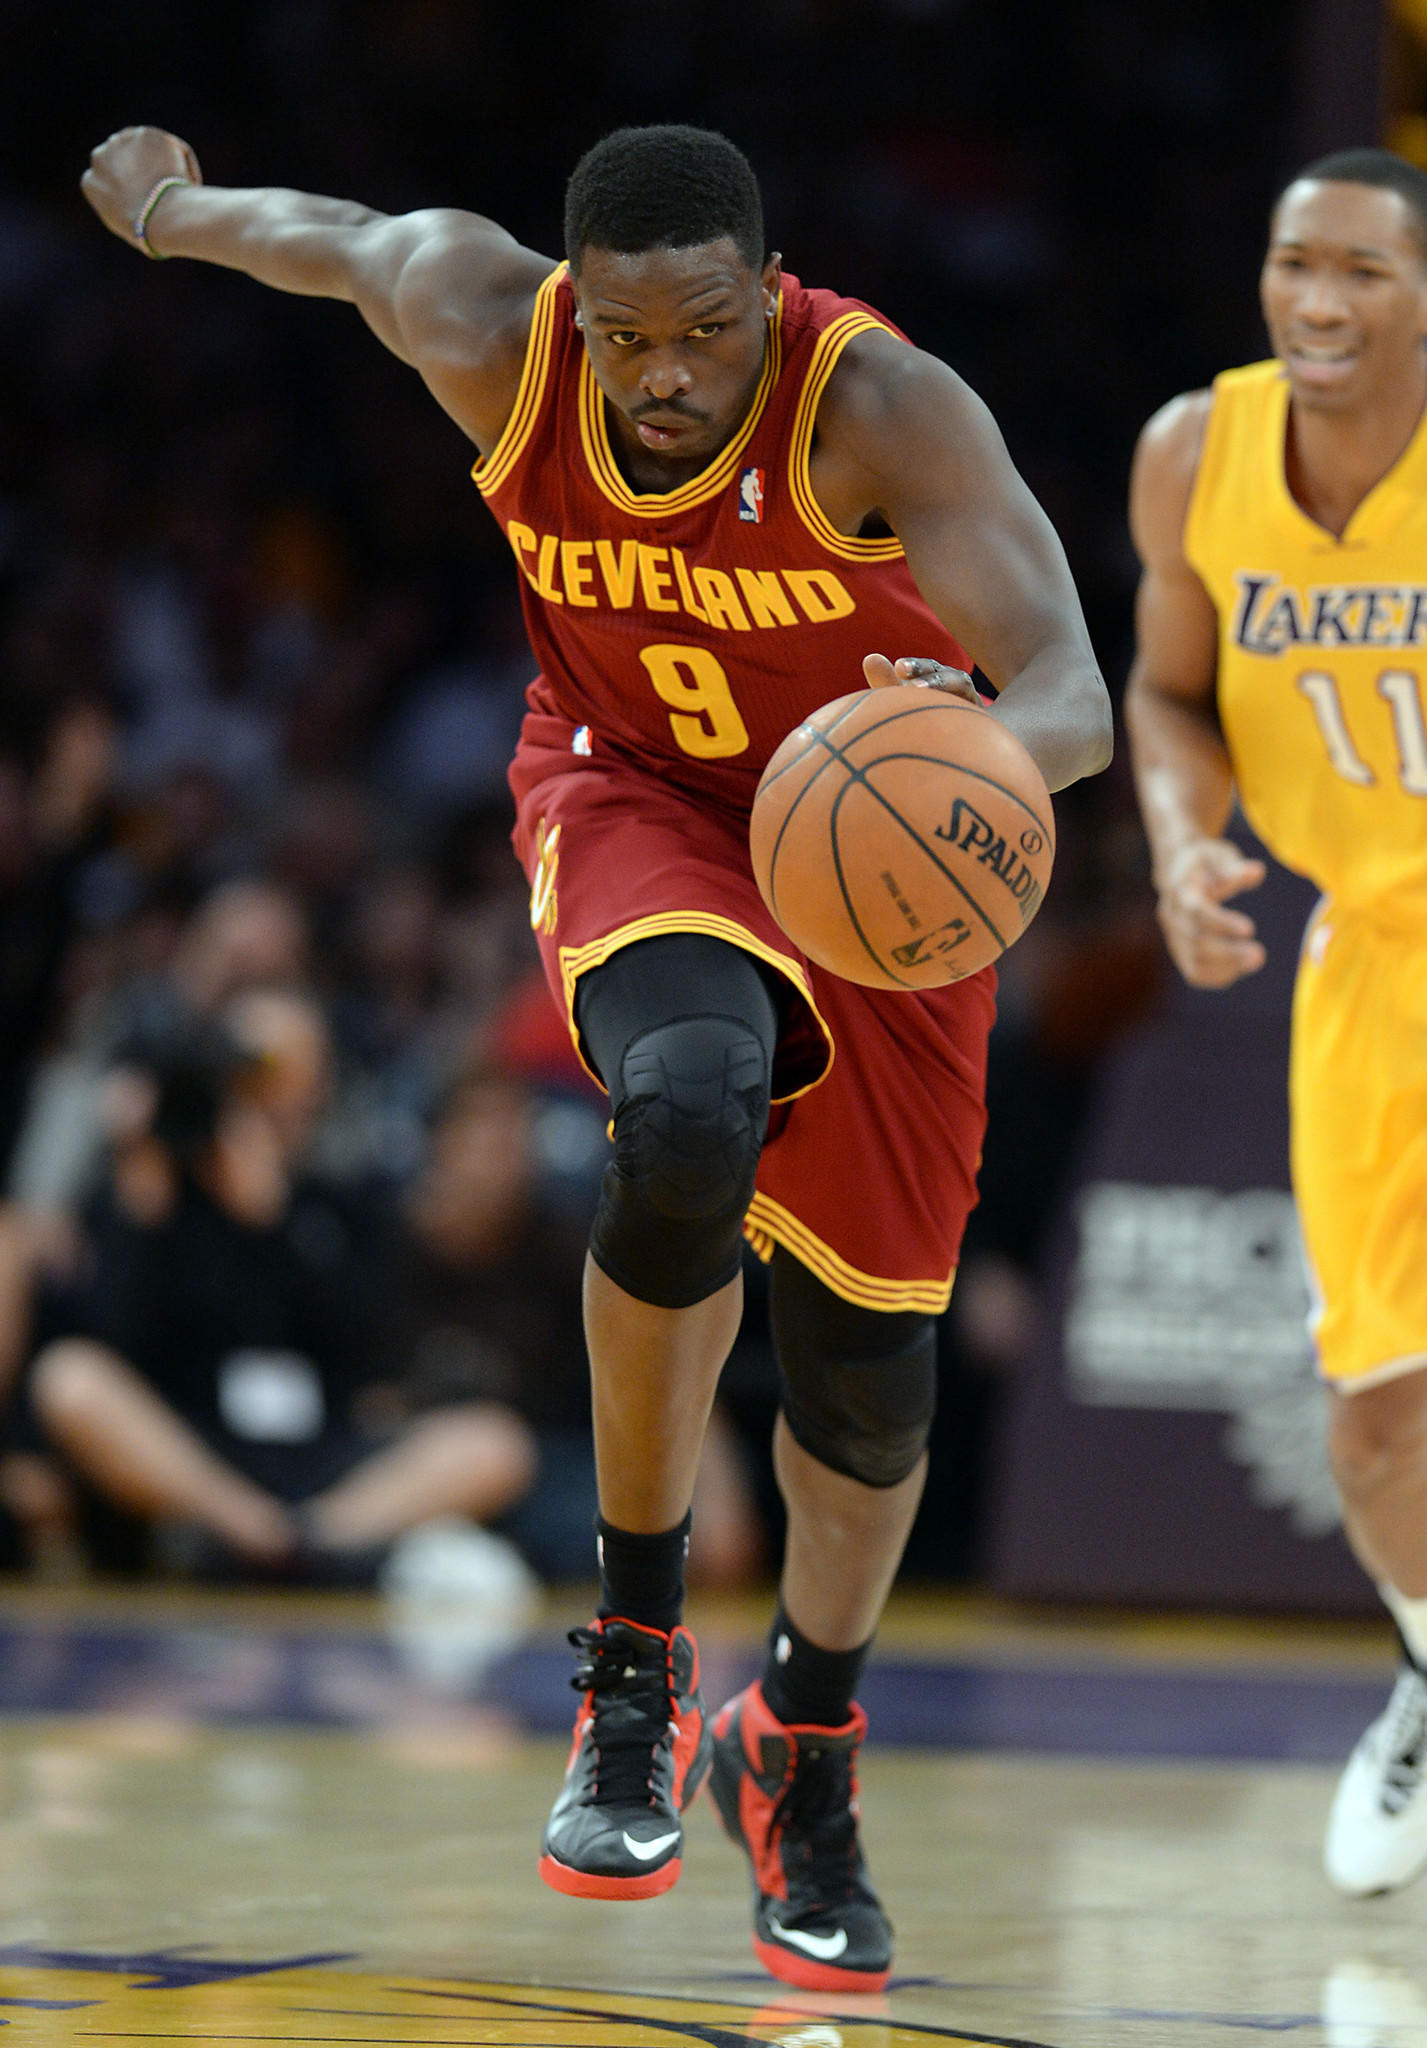 Cleveland Cavaliers small forward Luol Deng (9) steals the ball from Lakers shooting guard Wesley Johnson (11).